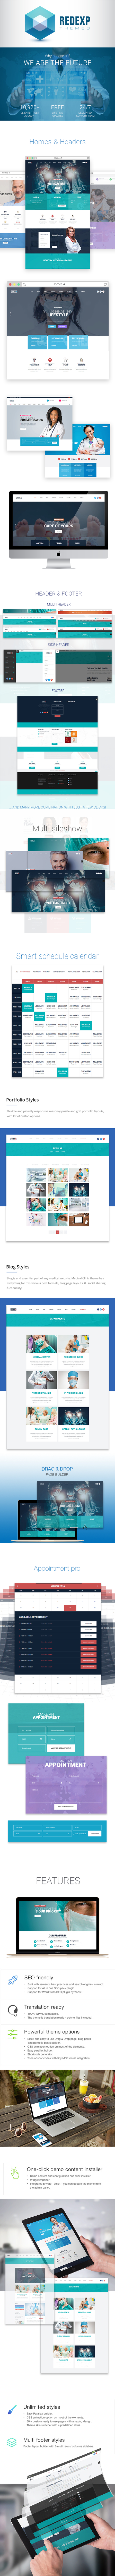 Medix - Medical Clinic WordPress Theme  Download Medix – Medical Clinic WordPress Theme nulled medix description